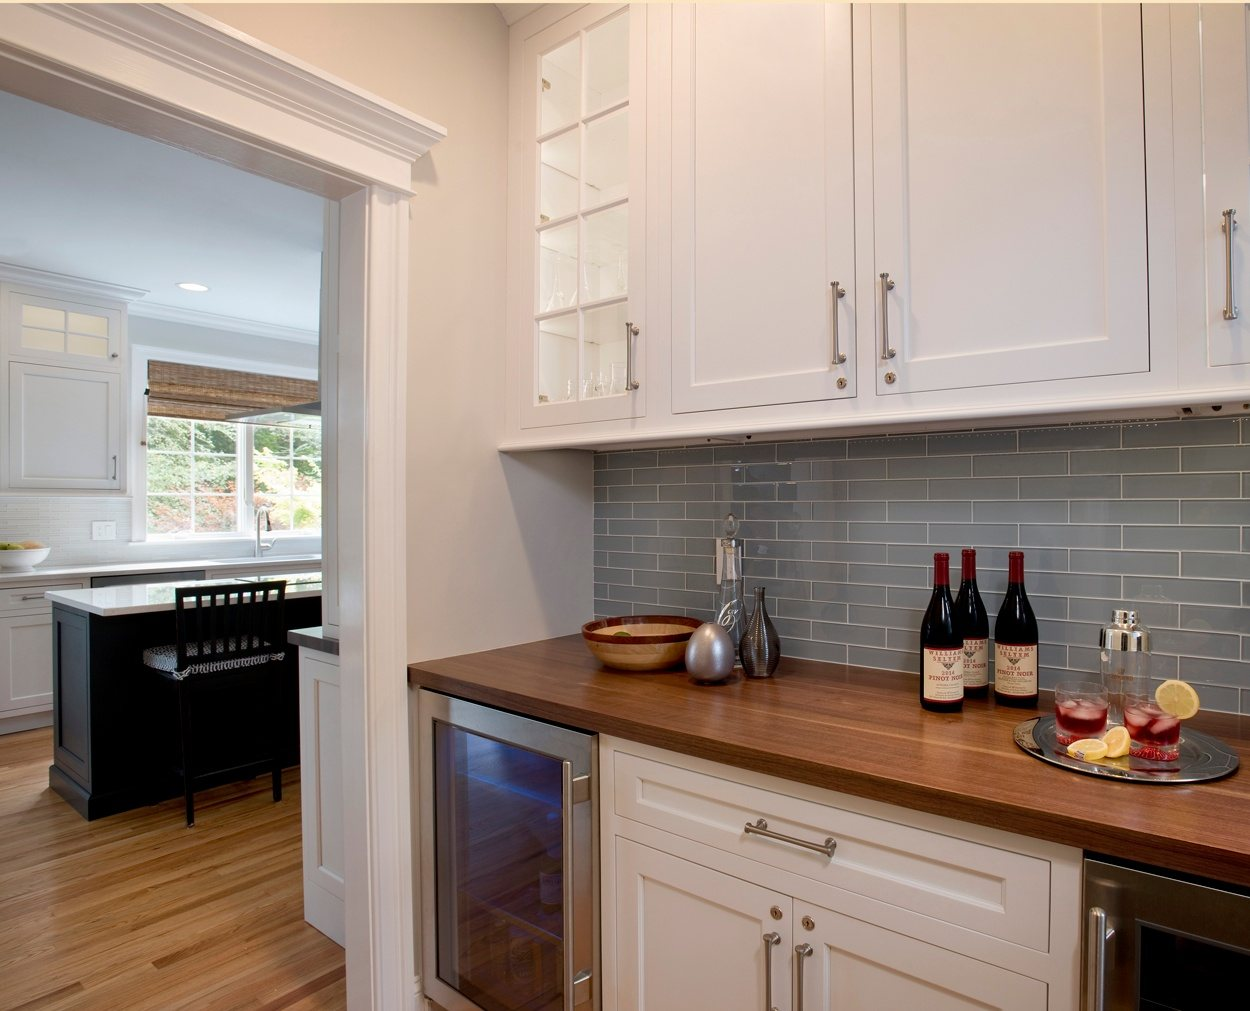 Butler's pantry and view into the kitchen for this classic kitchen design.